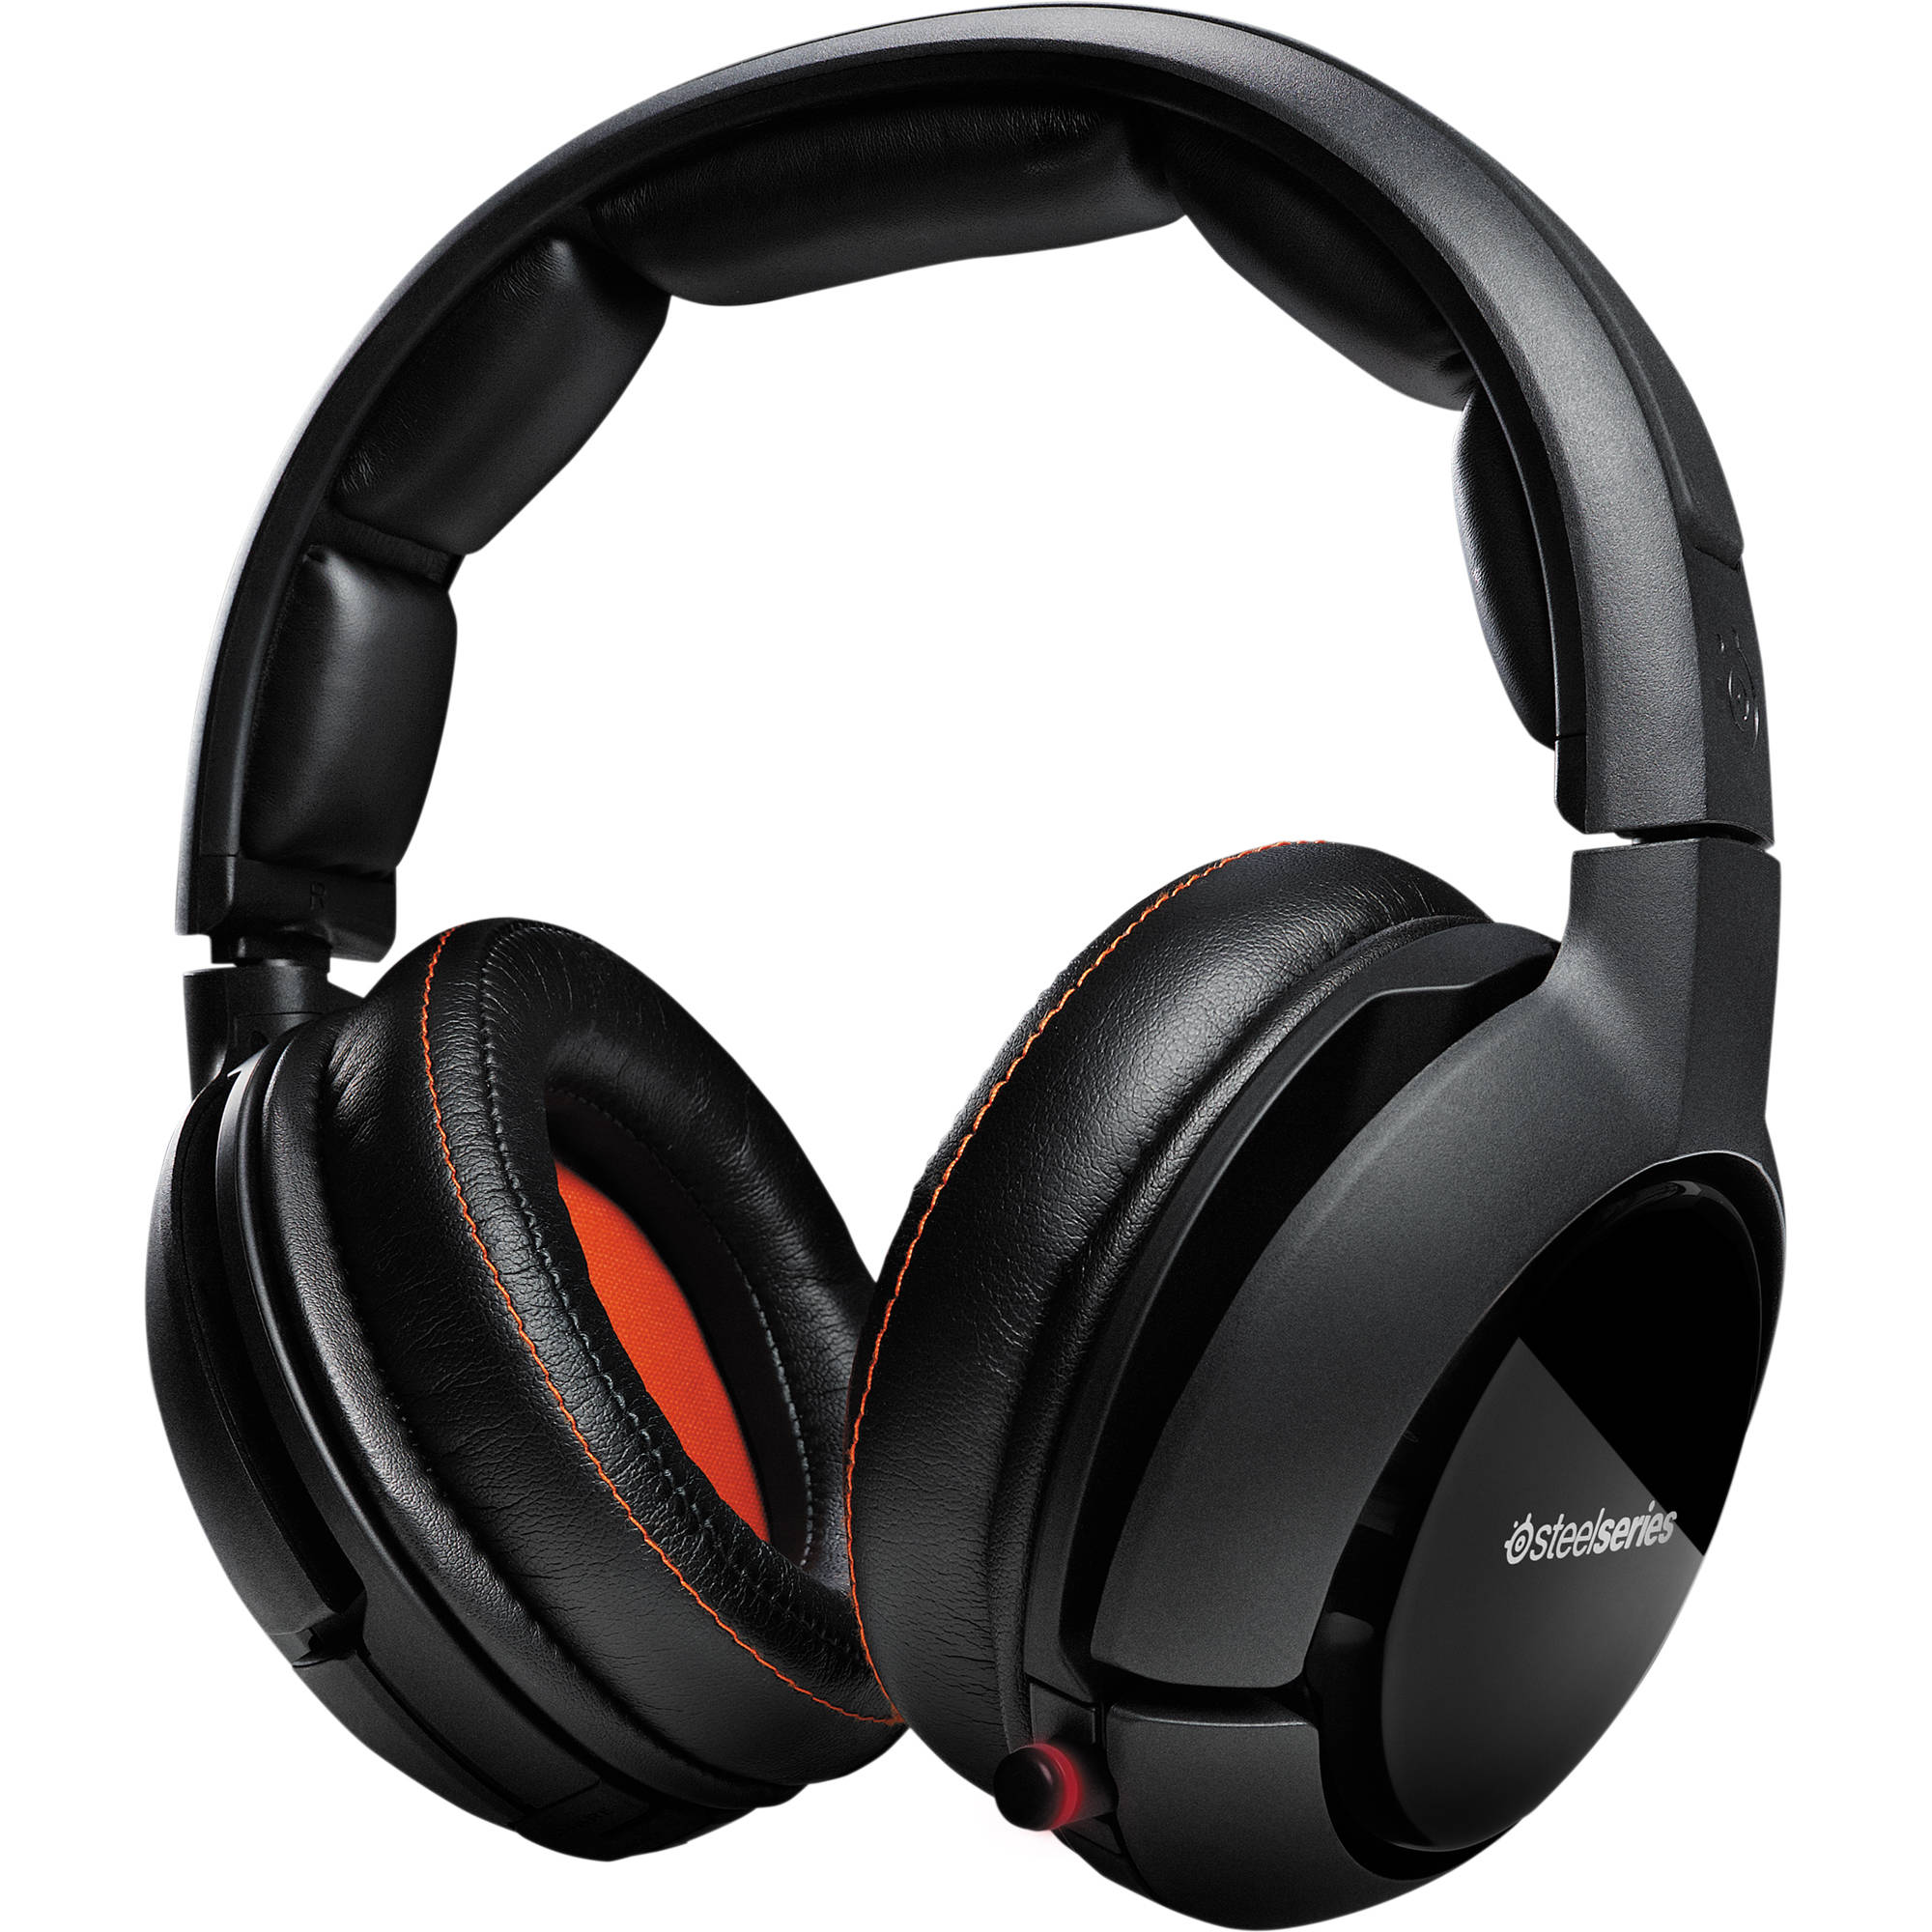 SteelSeries H Wireless Gaming Headset and Transmitter